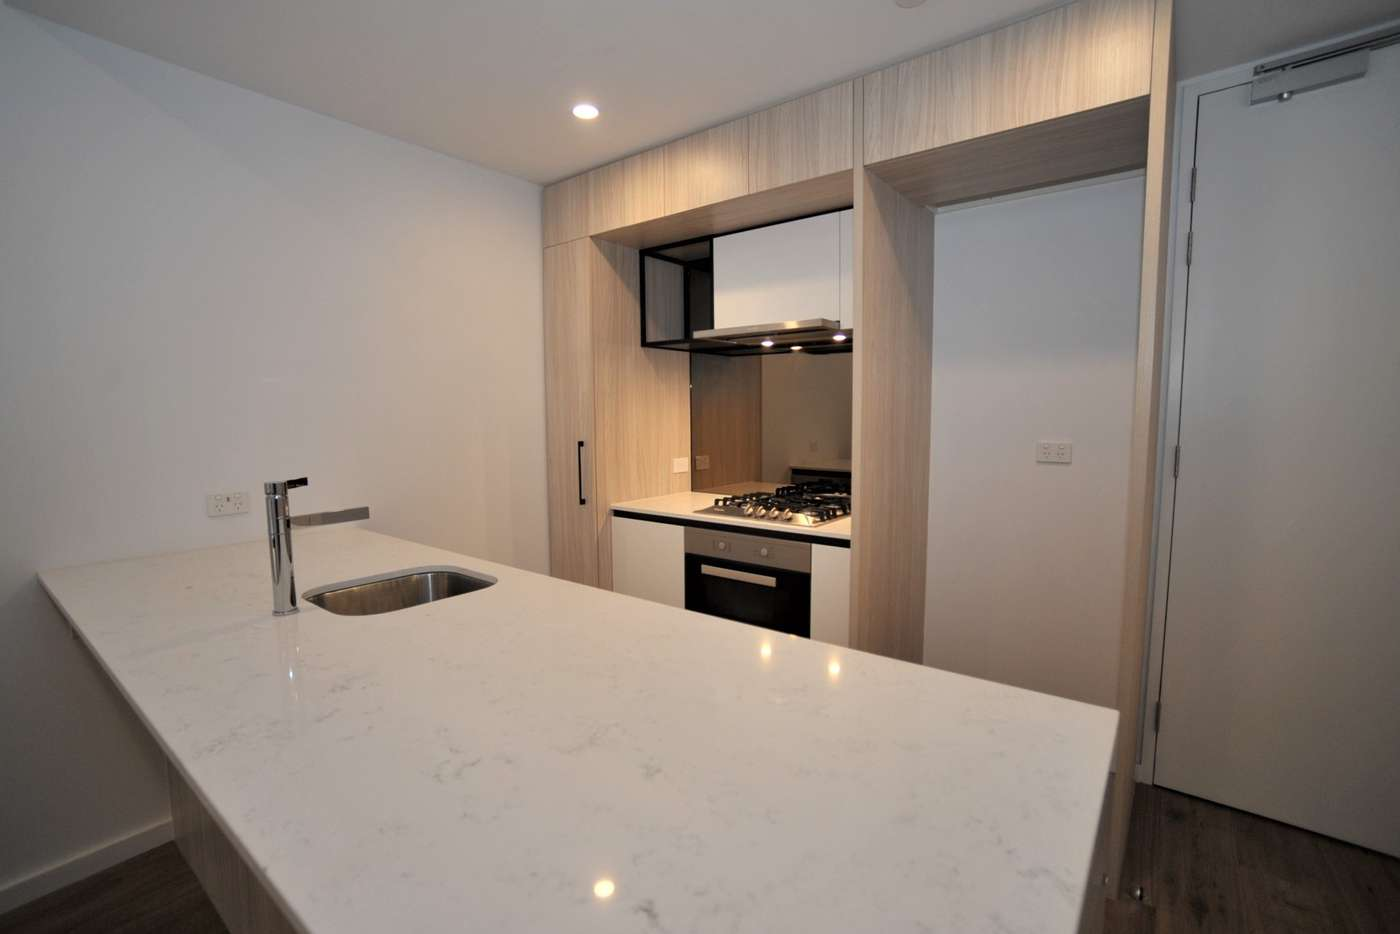 Main view of Homely apartment listing, 5/25 Belmont Avenue North, Glen Iris VIC 3146